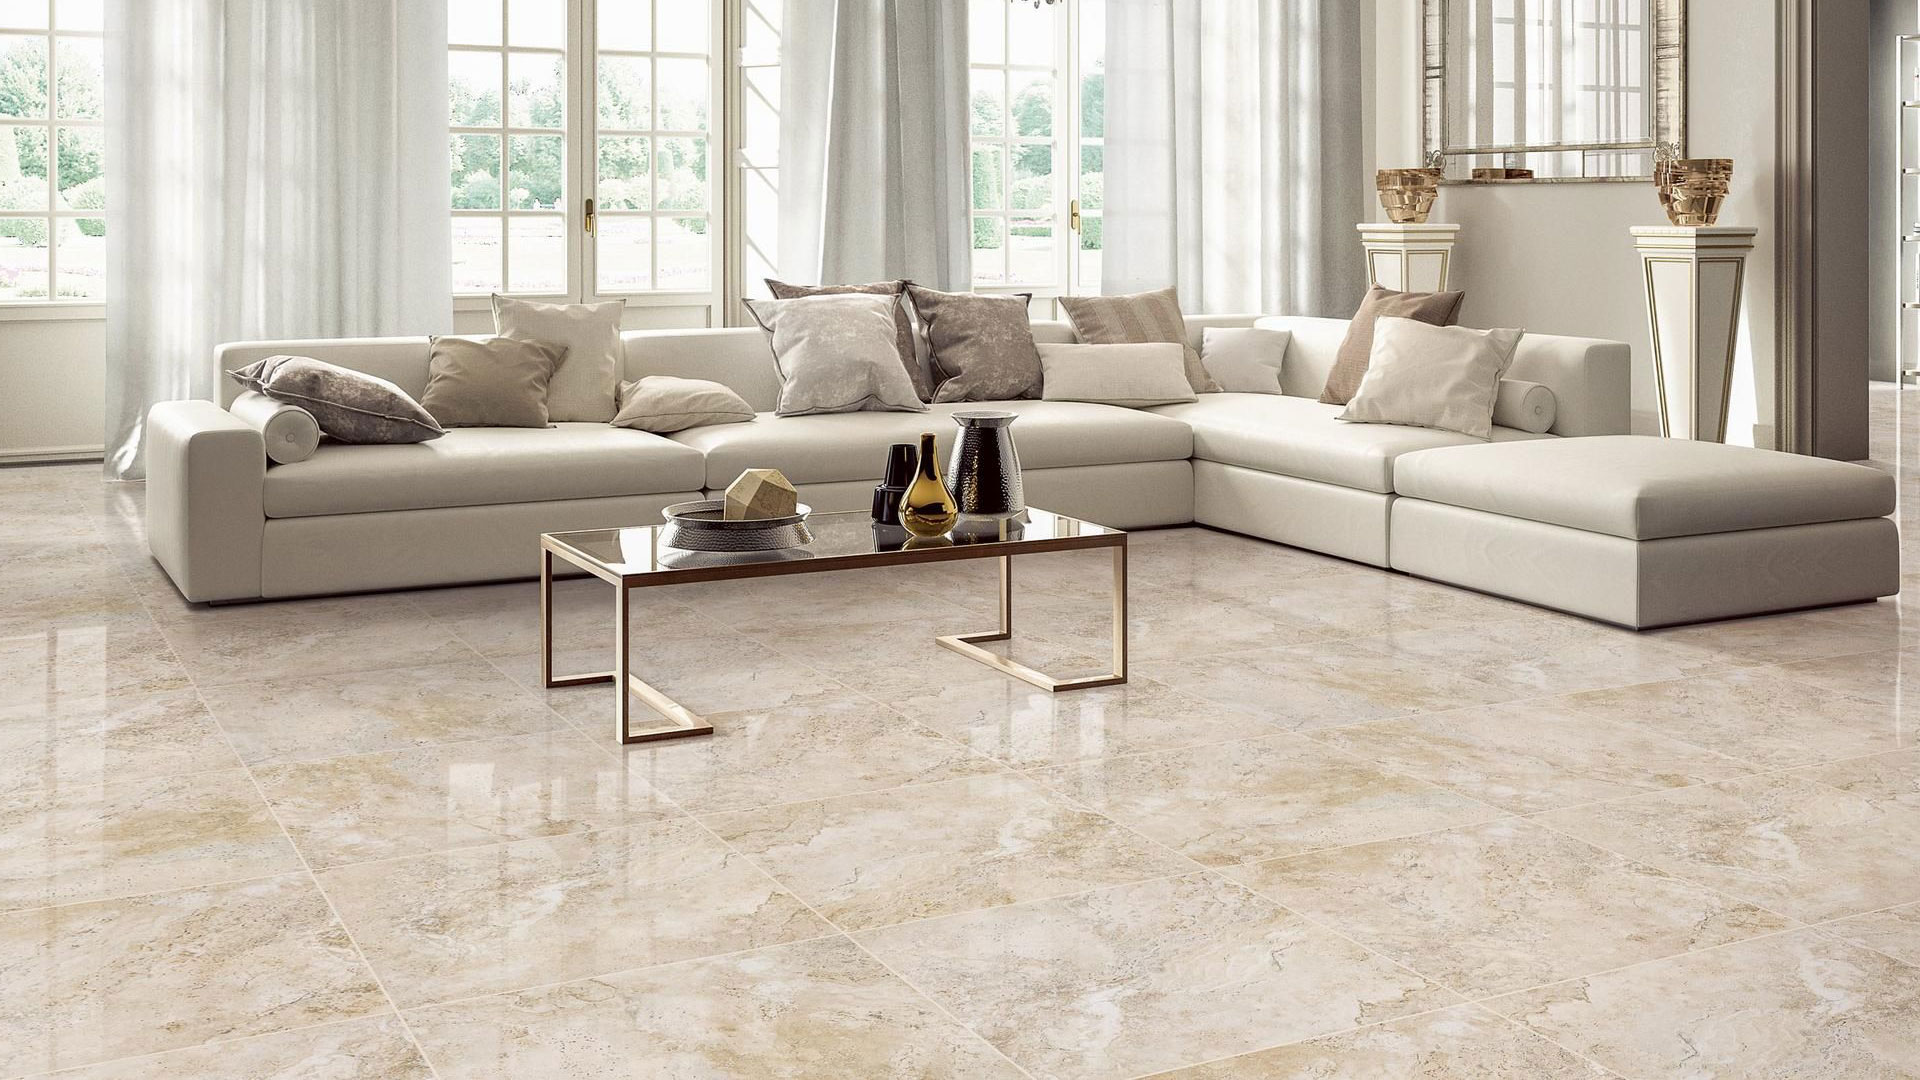 Porcelain Tiles for your Home Remodeling project in Marion County, FL